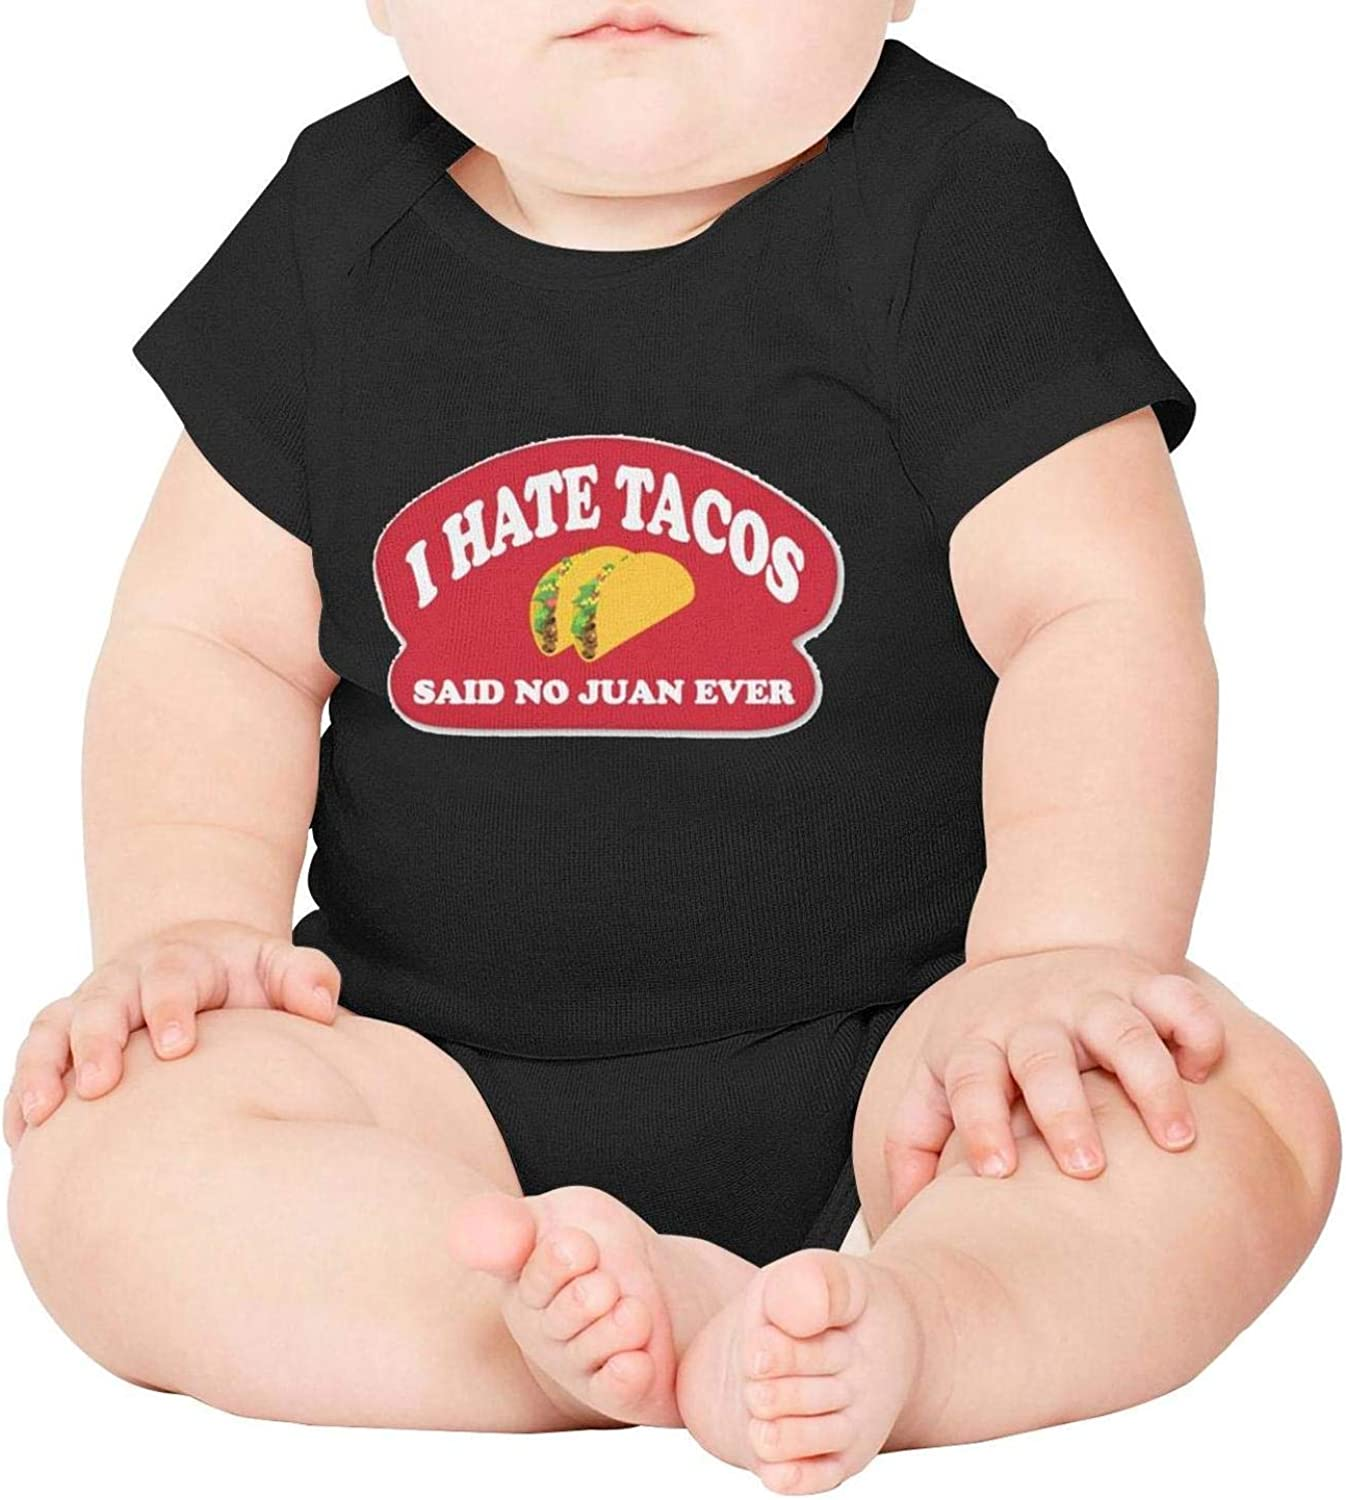 Baby Onesies Red I Hate Tacos Said No Juan Ever 100/% Cotton Newborn Baby Clothes Cute Short Sleeve Bodysuit